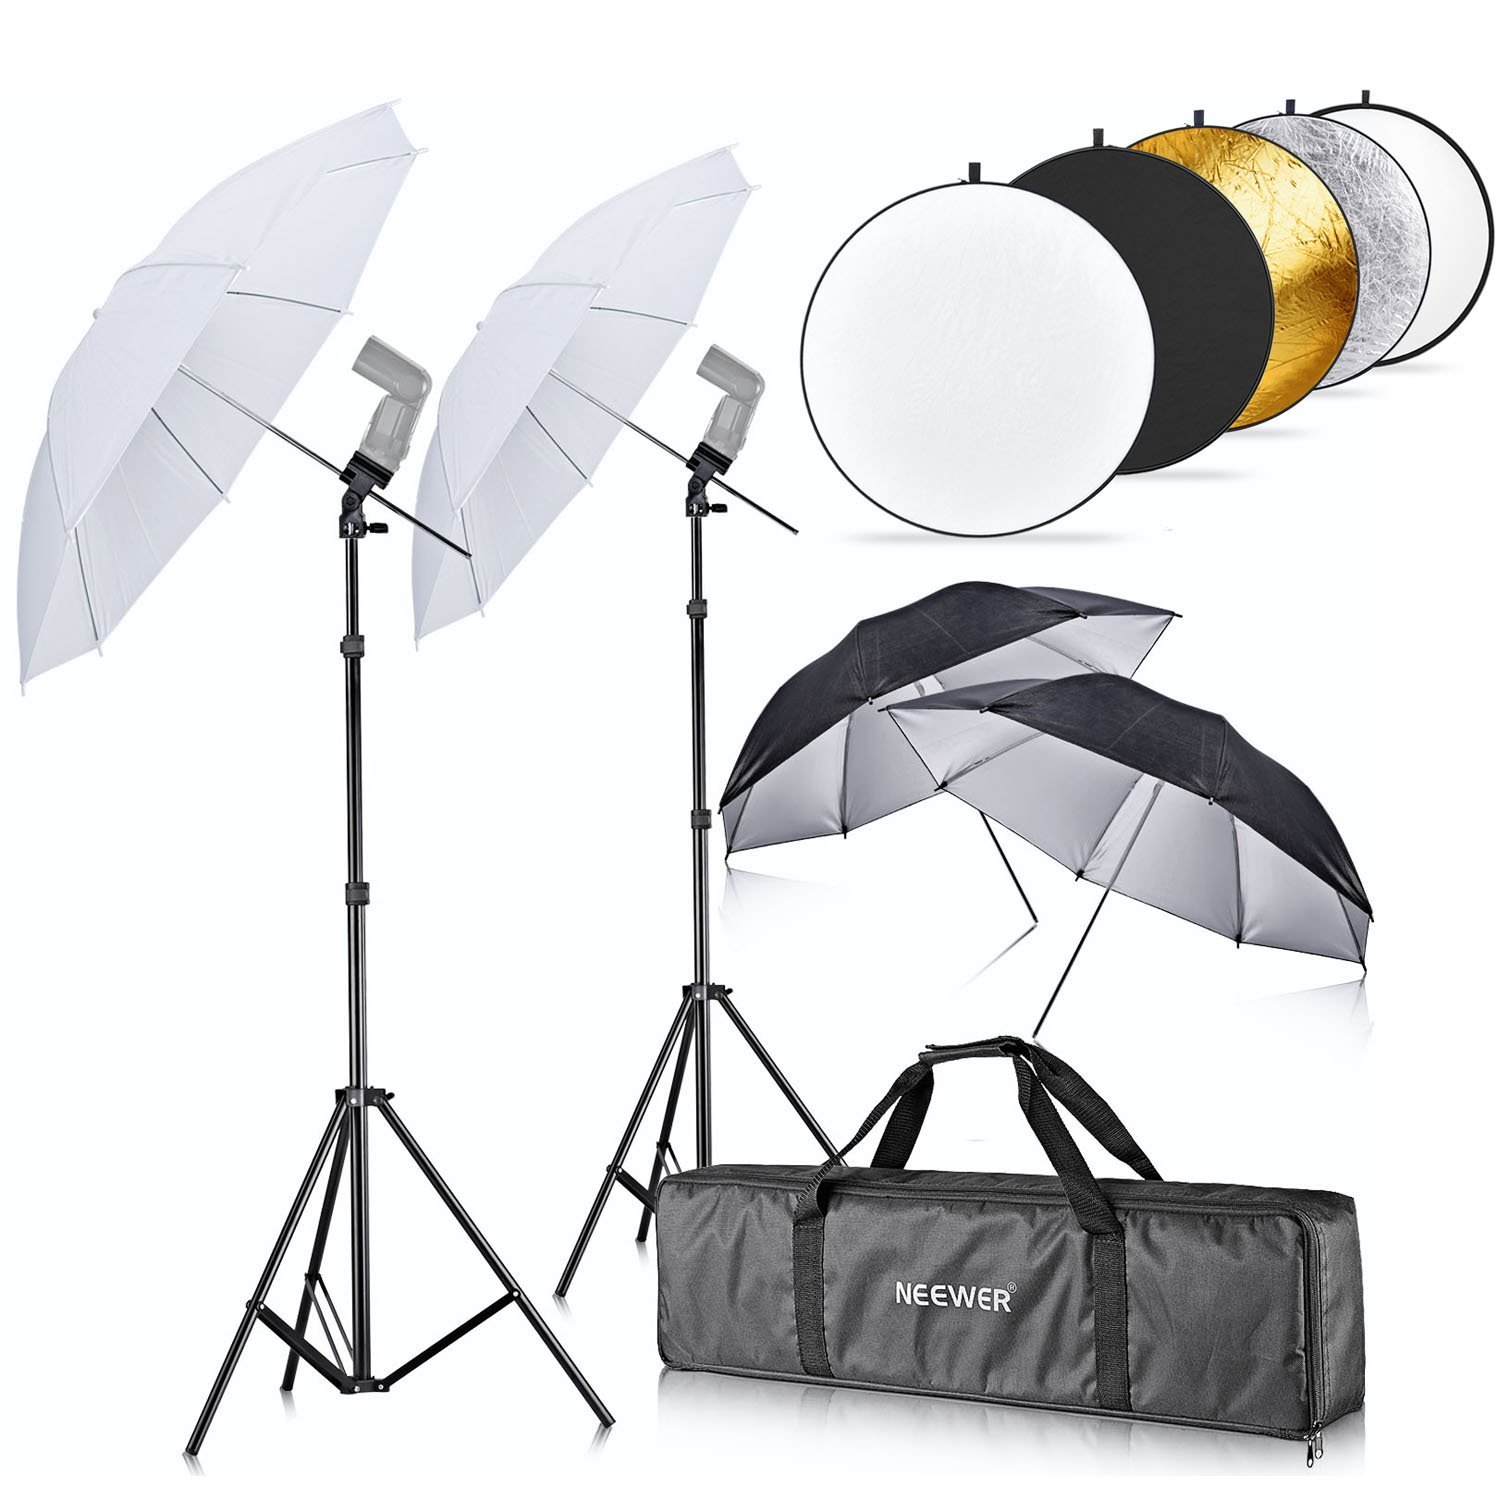 guide recommended equipment for contro powered venture b monolight buying lighting with impact h kits explora battery kit ttl photography canon